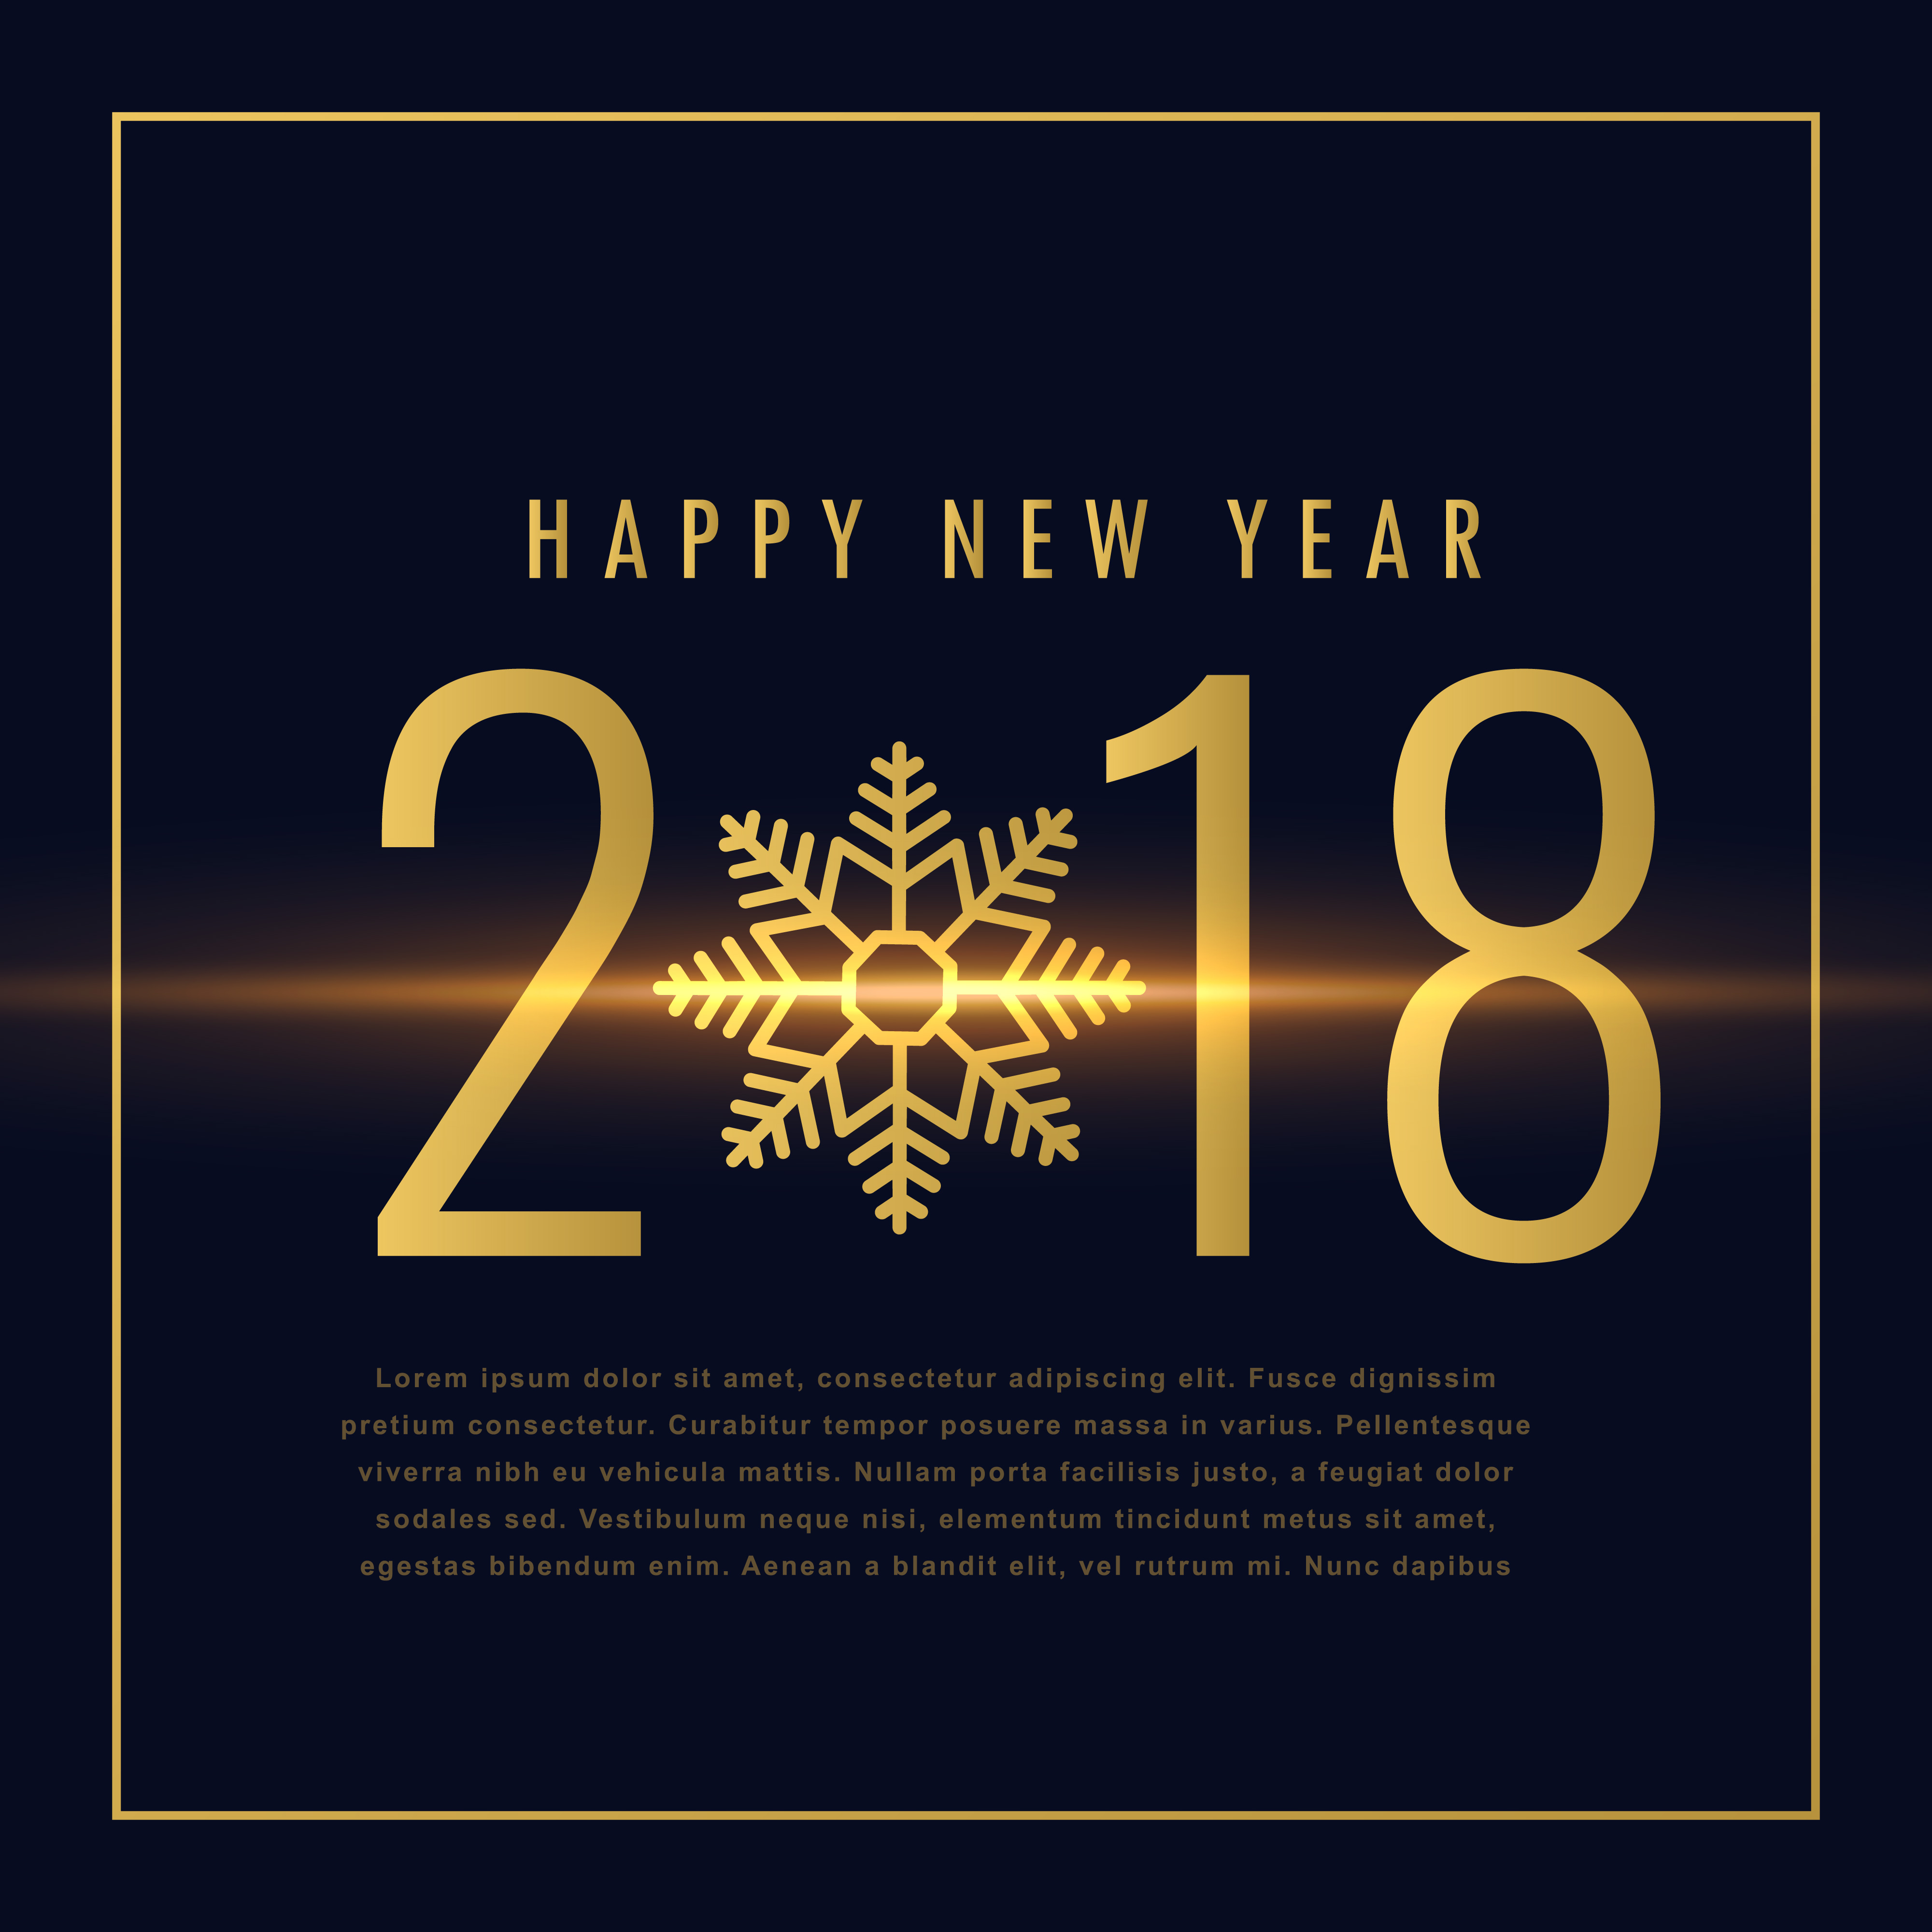 happy new year 2018 text written in golden style download free vector art stock graphics images